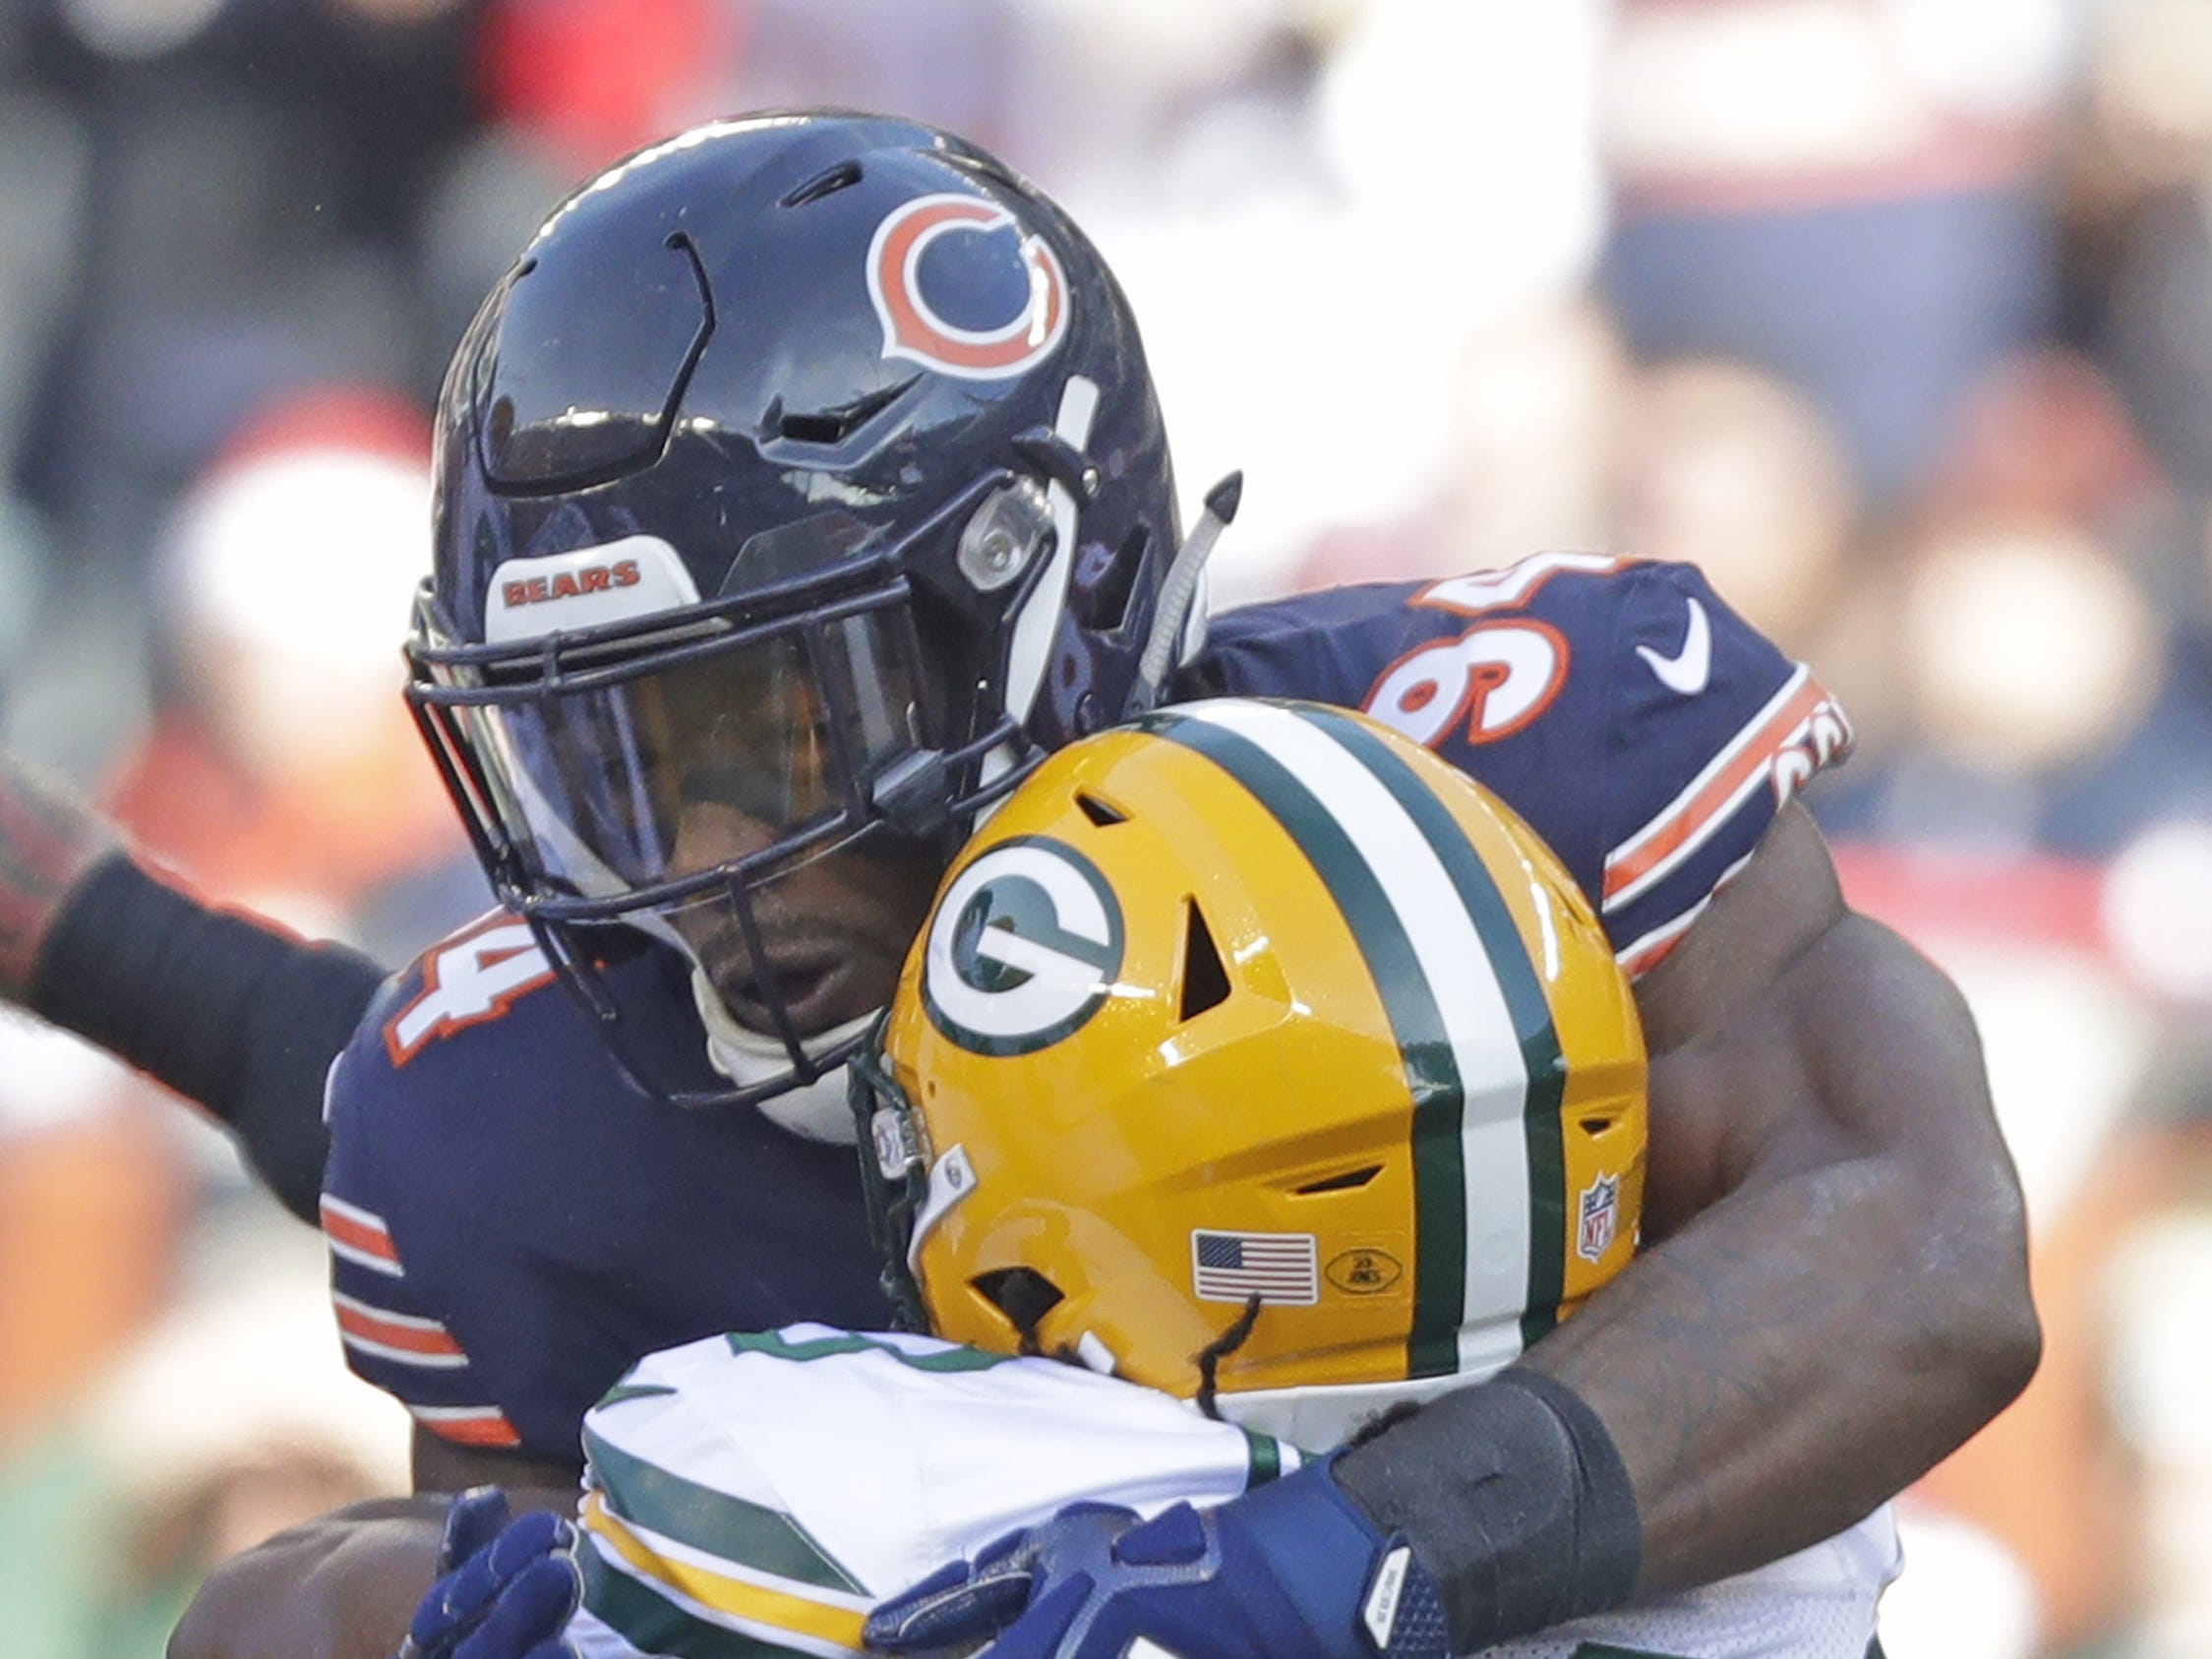 Chicago Bears outside linebacker Leonard Floyd (94) tackles Green Bay Packers running back Aaron Jones (33) in the first quarter at Soldier Field on Sunday, December 16, 2018 in Chicago, Illinois. Adam Wesley/USA TODAY NETWORK-Wis